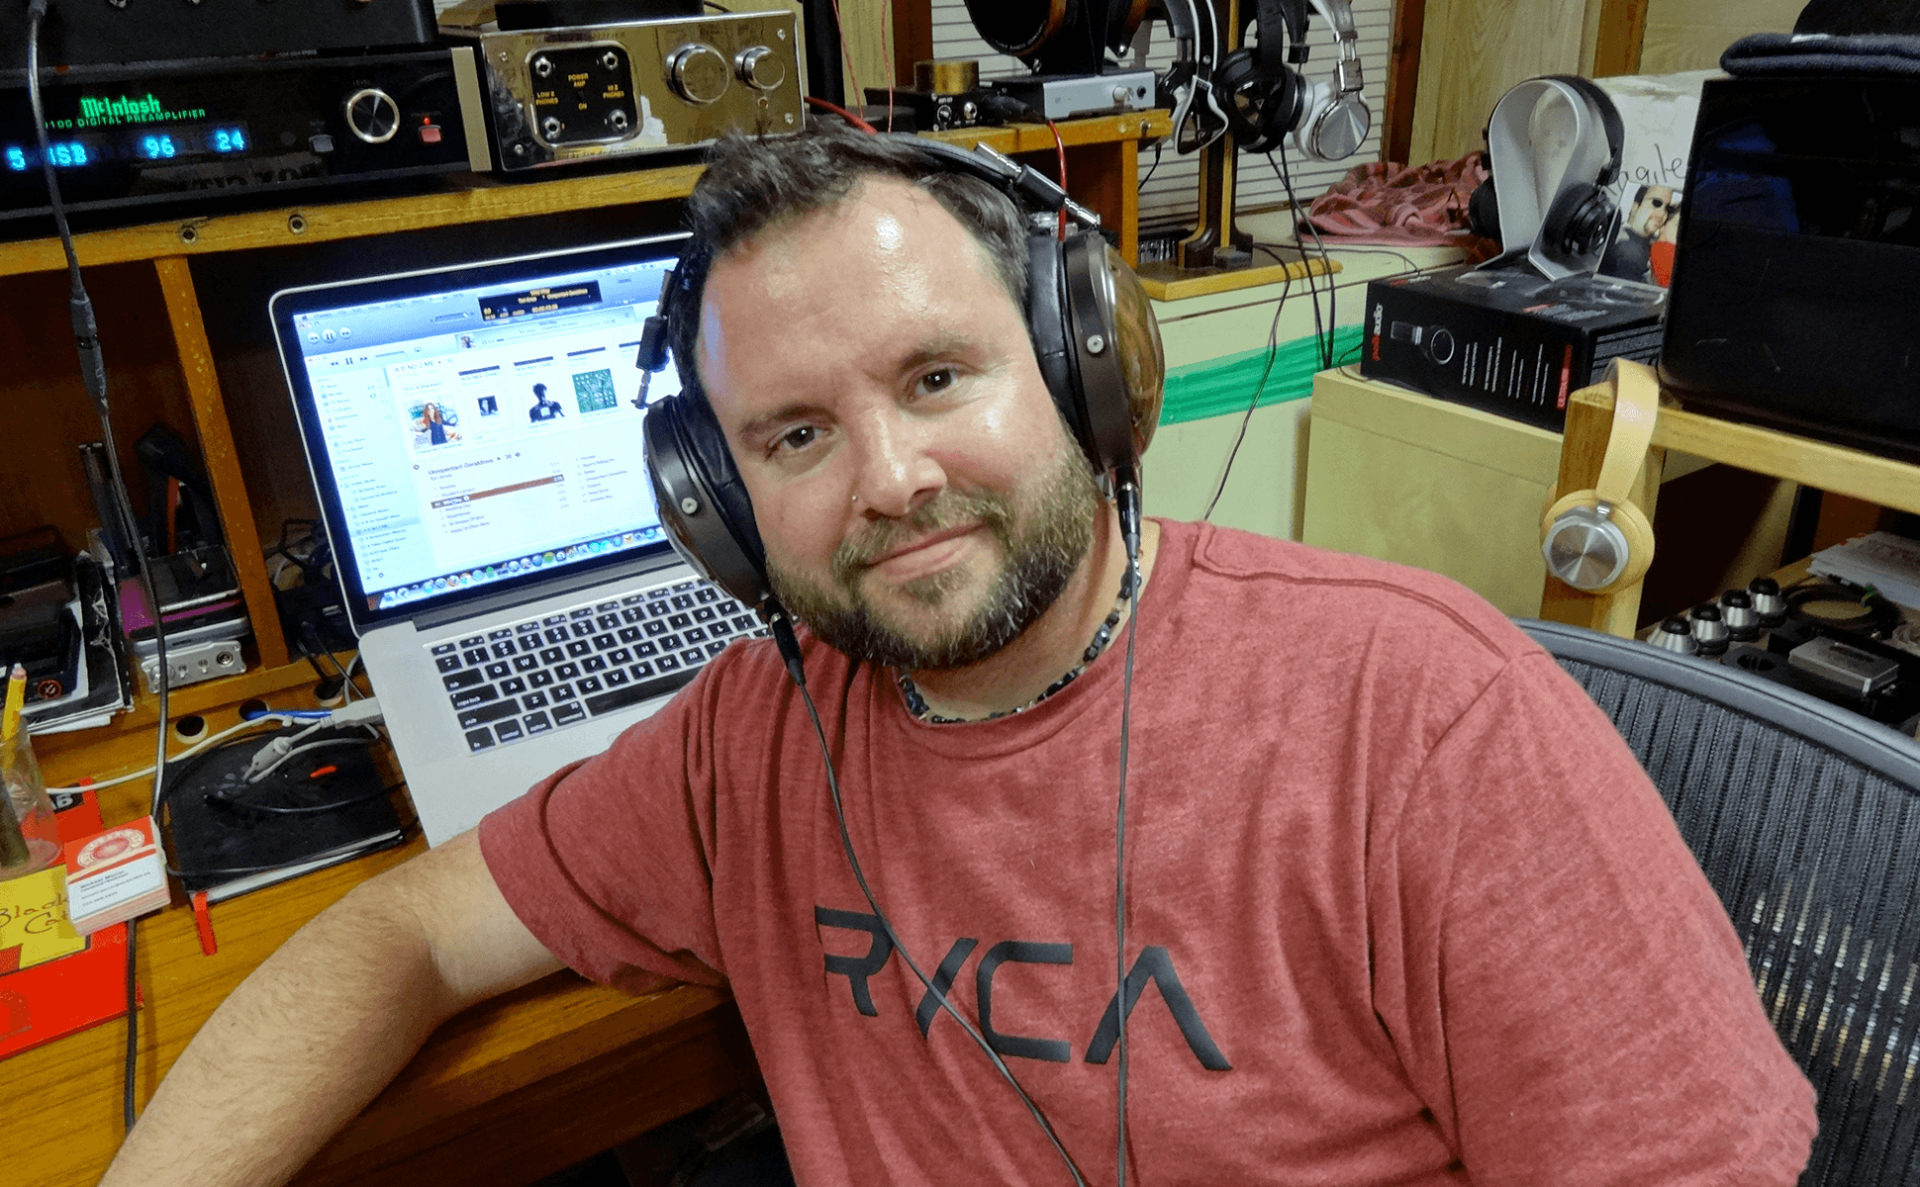 Michael Mercer of 360.org with Silver Dragon cable and Audeze LCD-XC Headphones